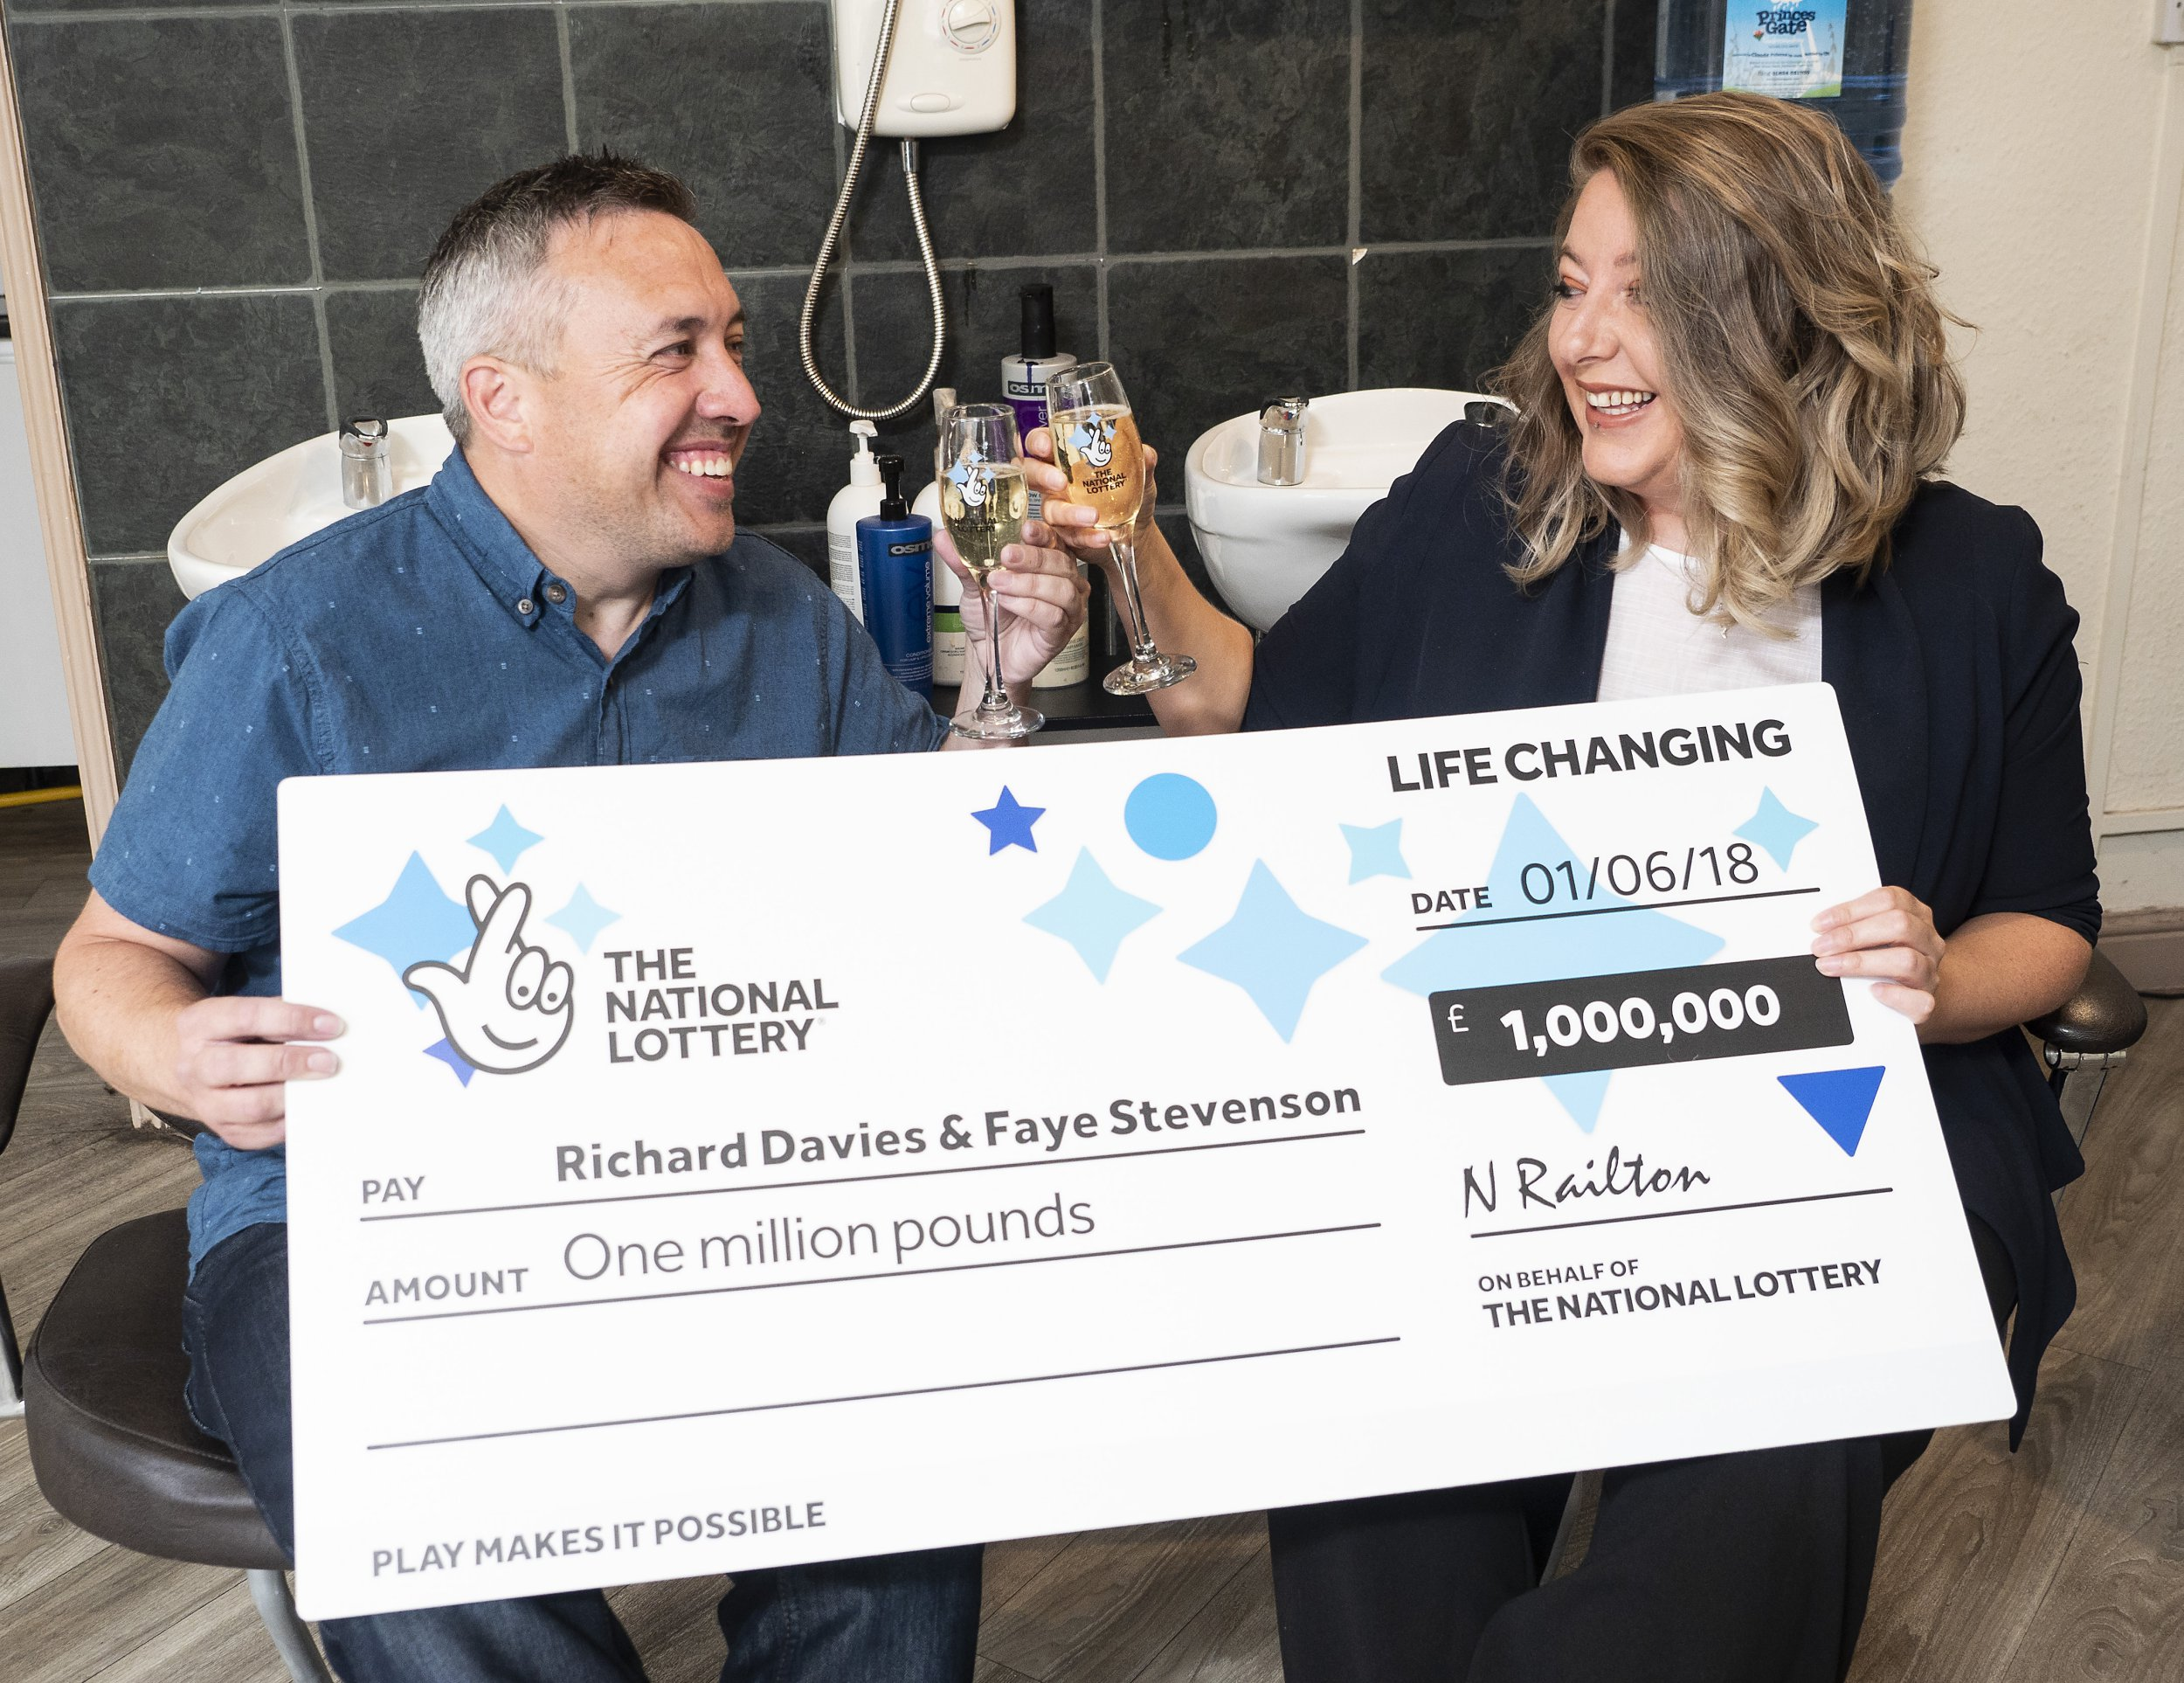 A lucky lottery millionaire's car broke down on his way to collect his ??1m - so he splashed out on AA membership to get his winnigs Hairdresser Richard Davies, 41, was delighted to hit the ??1m Euromillions jackpot but was told their village shop was too small to payout. So Richard and partner Faye Stevenson, 36, agreed to drive 180 miles from Brecon, Mid Wales, to the Camelot winners lounge in Watford. Pictured here is Richard Davies & his Nurse partner Faye Stevenson. ?? Tim Dickenson/WALES NEWS SERVICE